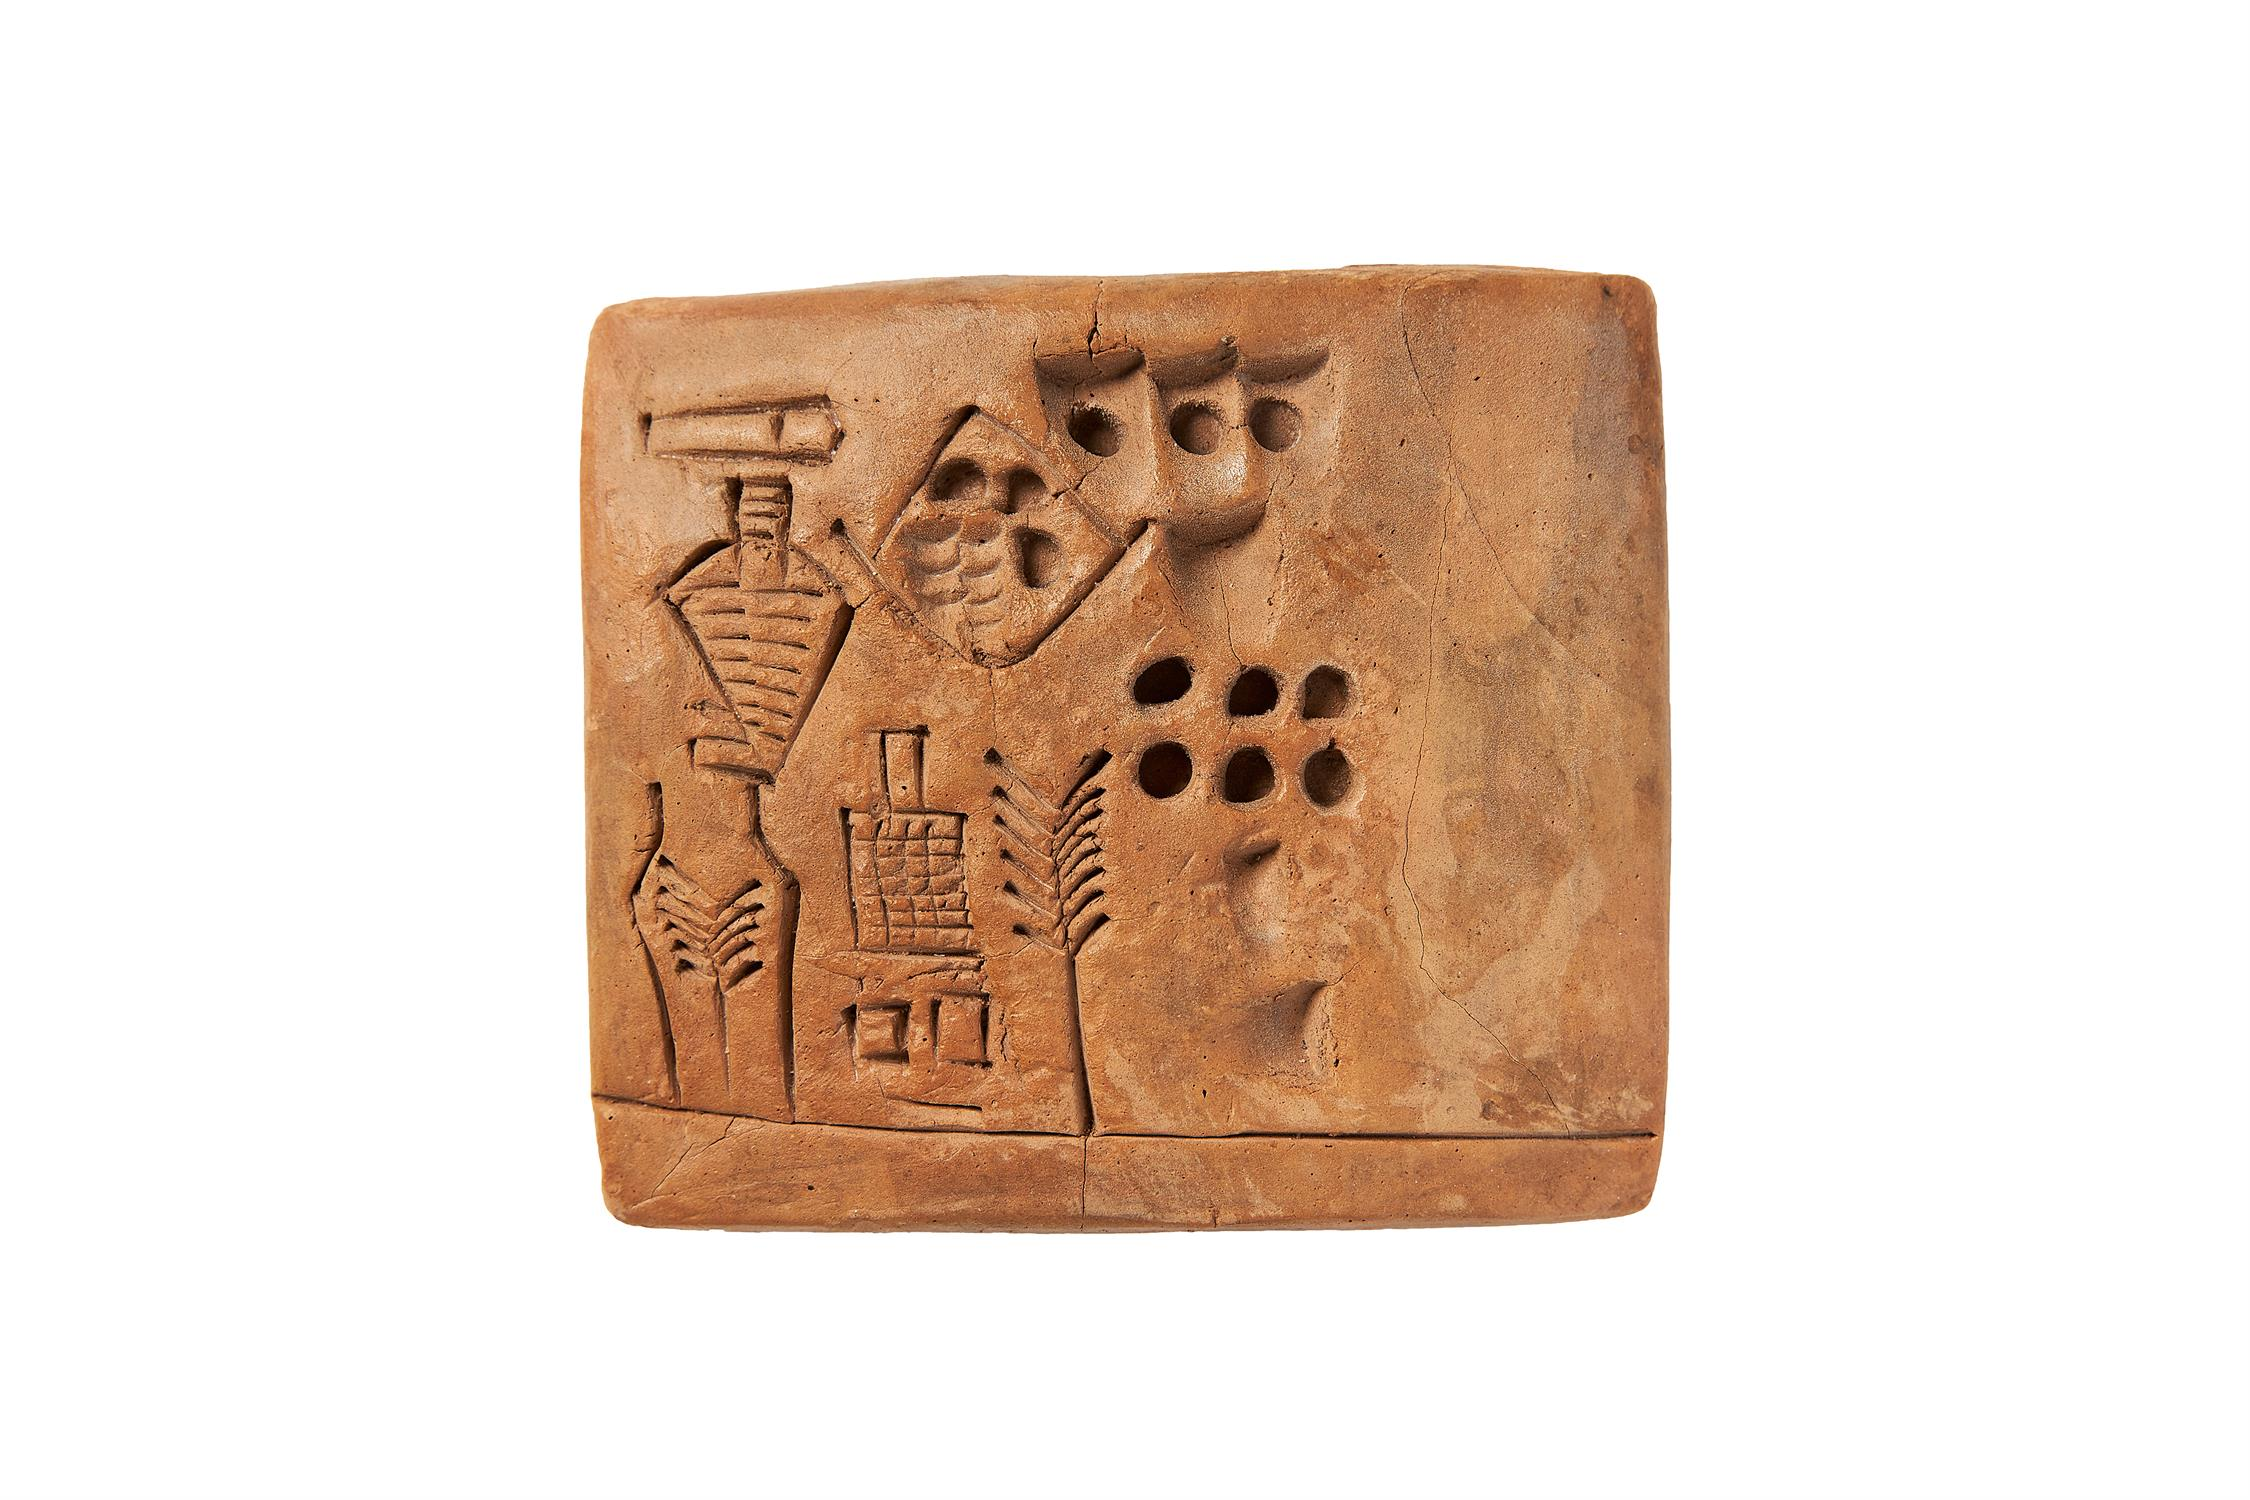 Lot 3 - ‡ The Kushim Clay Tablet, fine pictographic tablet [Sumer, Uruk III period (31st century BC.)]